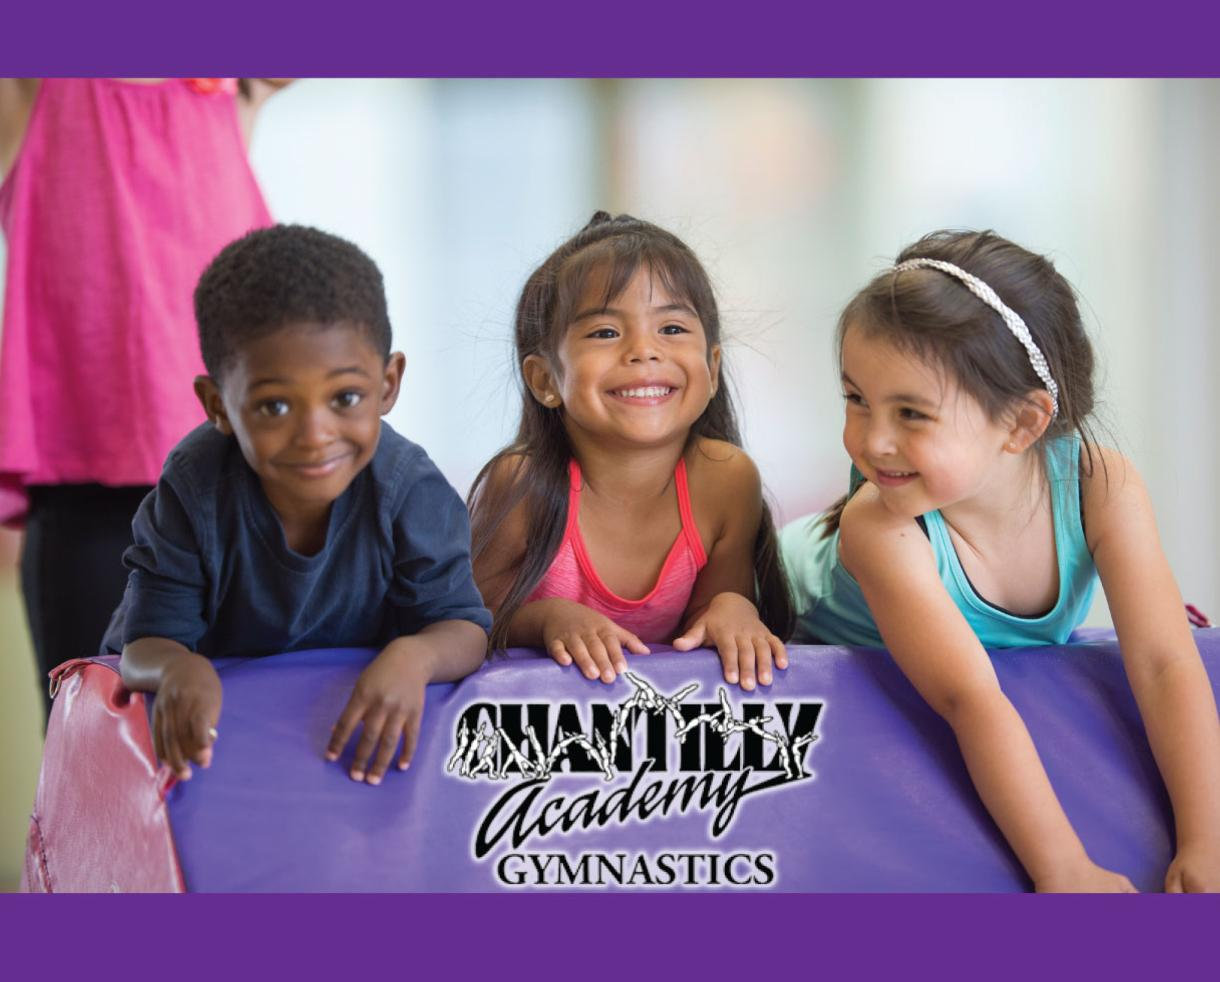 $183 for Chantilly Academy Gymnastics Summer Blast Camp for Ages 3+ in Chantilly ($260 Value - 30% Off)